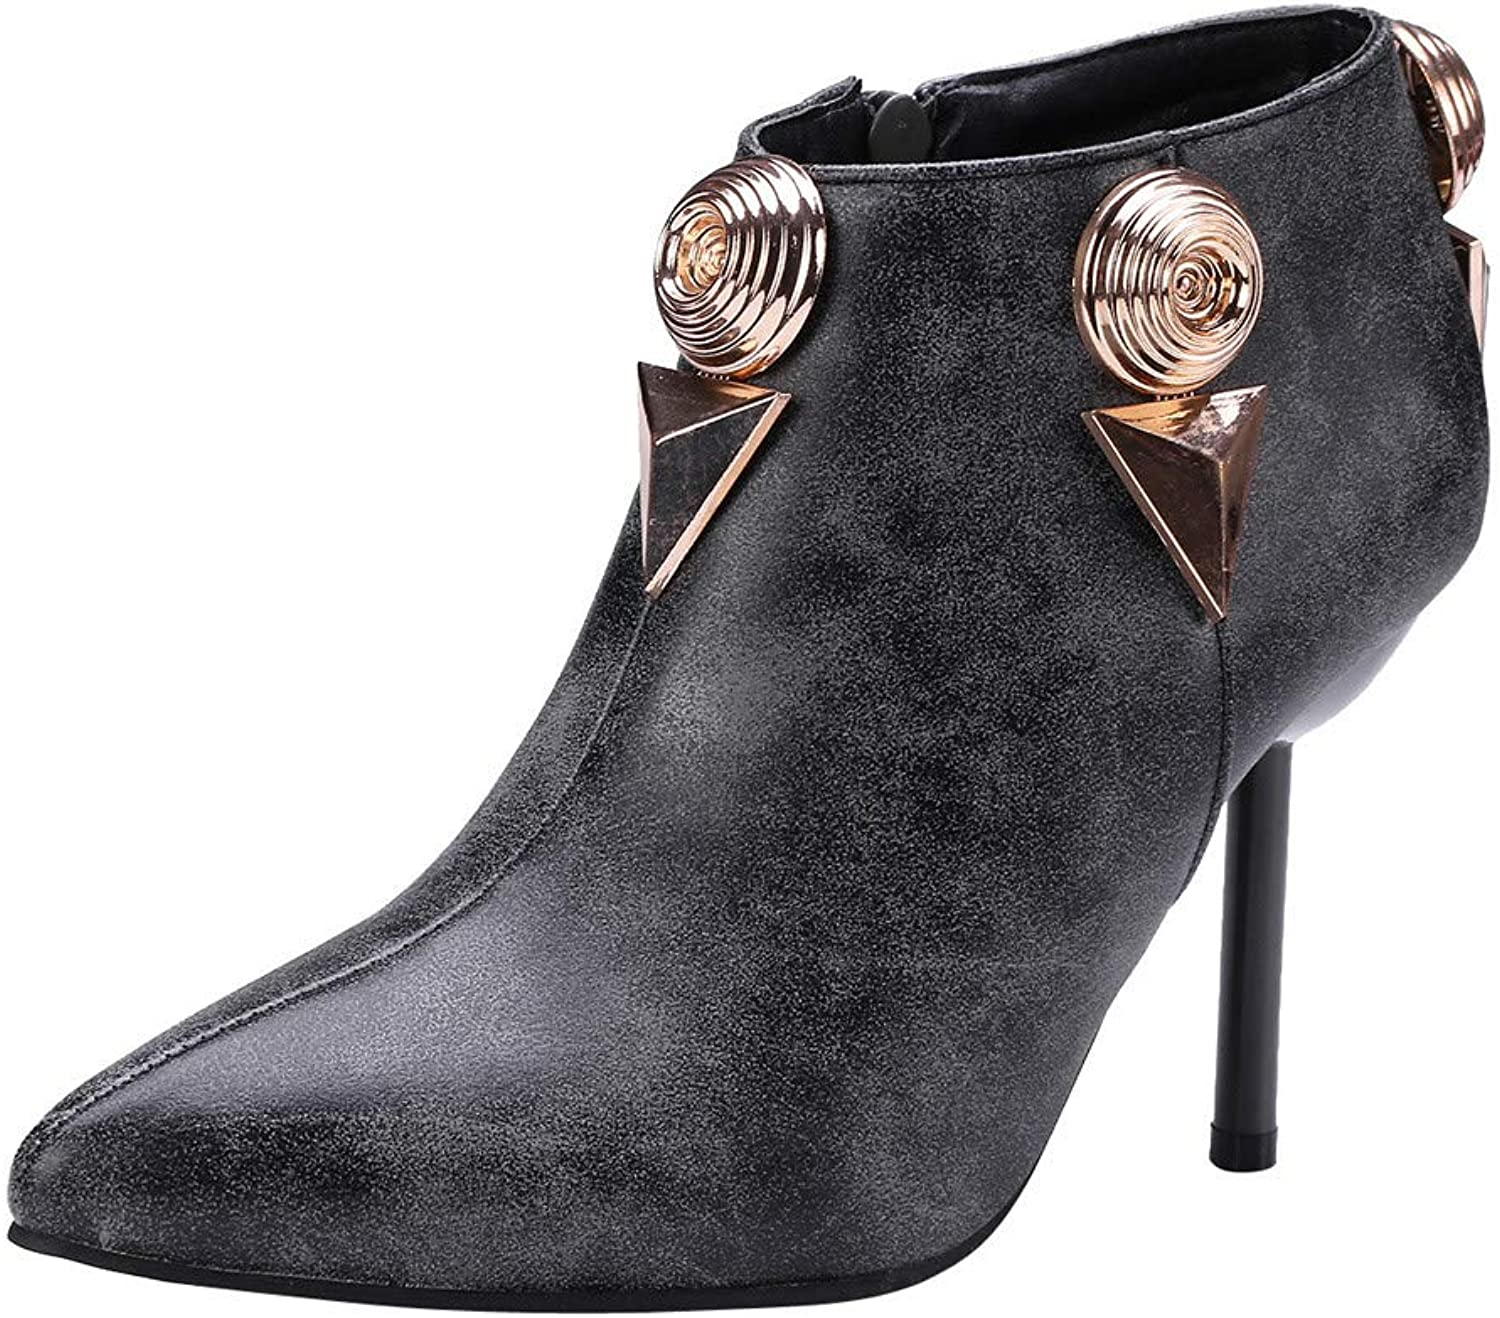 RedBrowm-women Boots Pointed Stiletto High Heel shoes Metal Buckle Side Zipper Boots